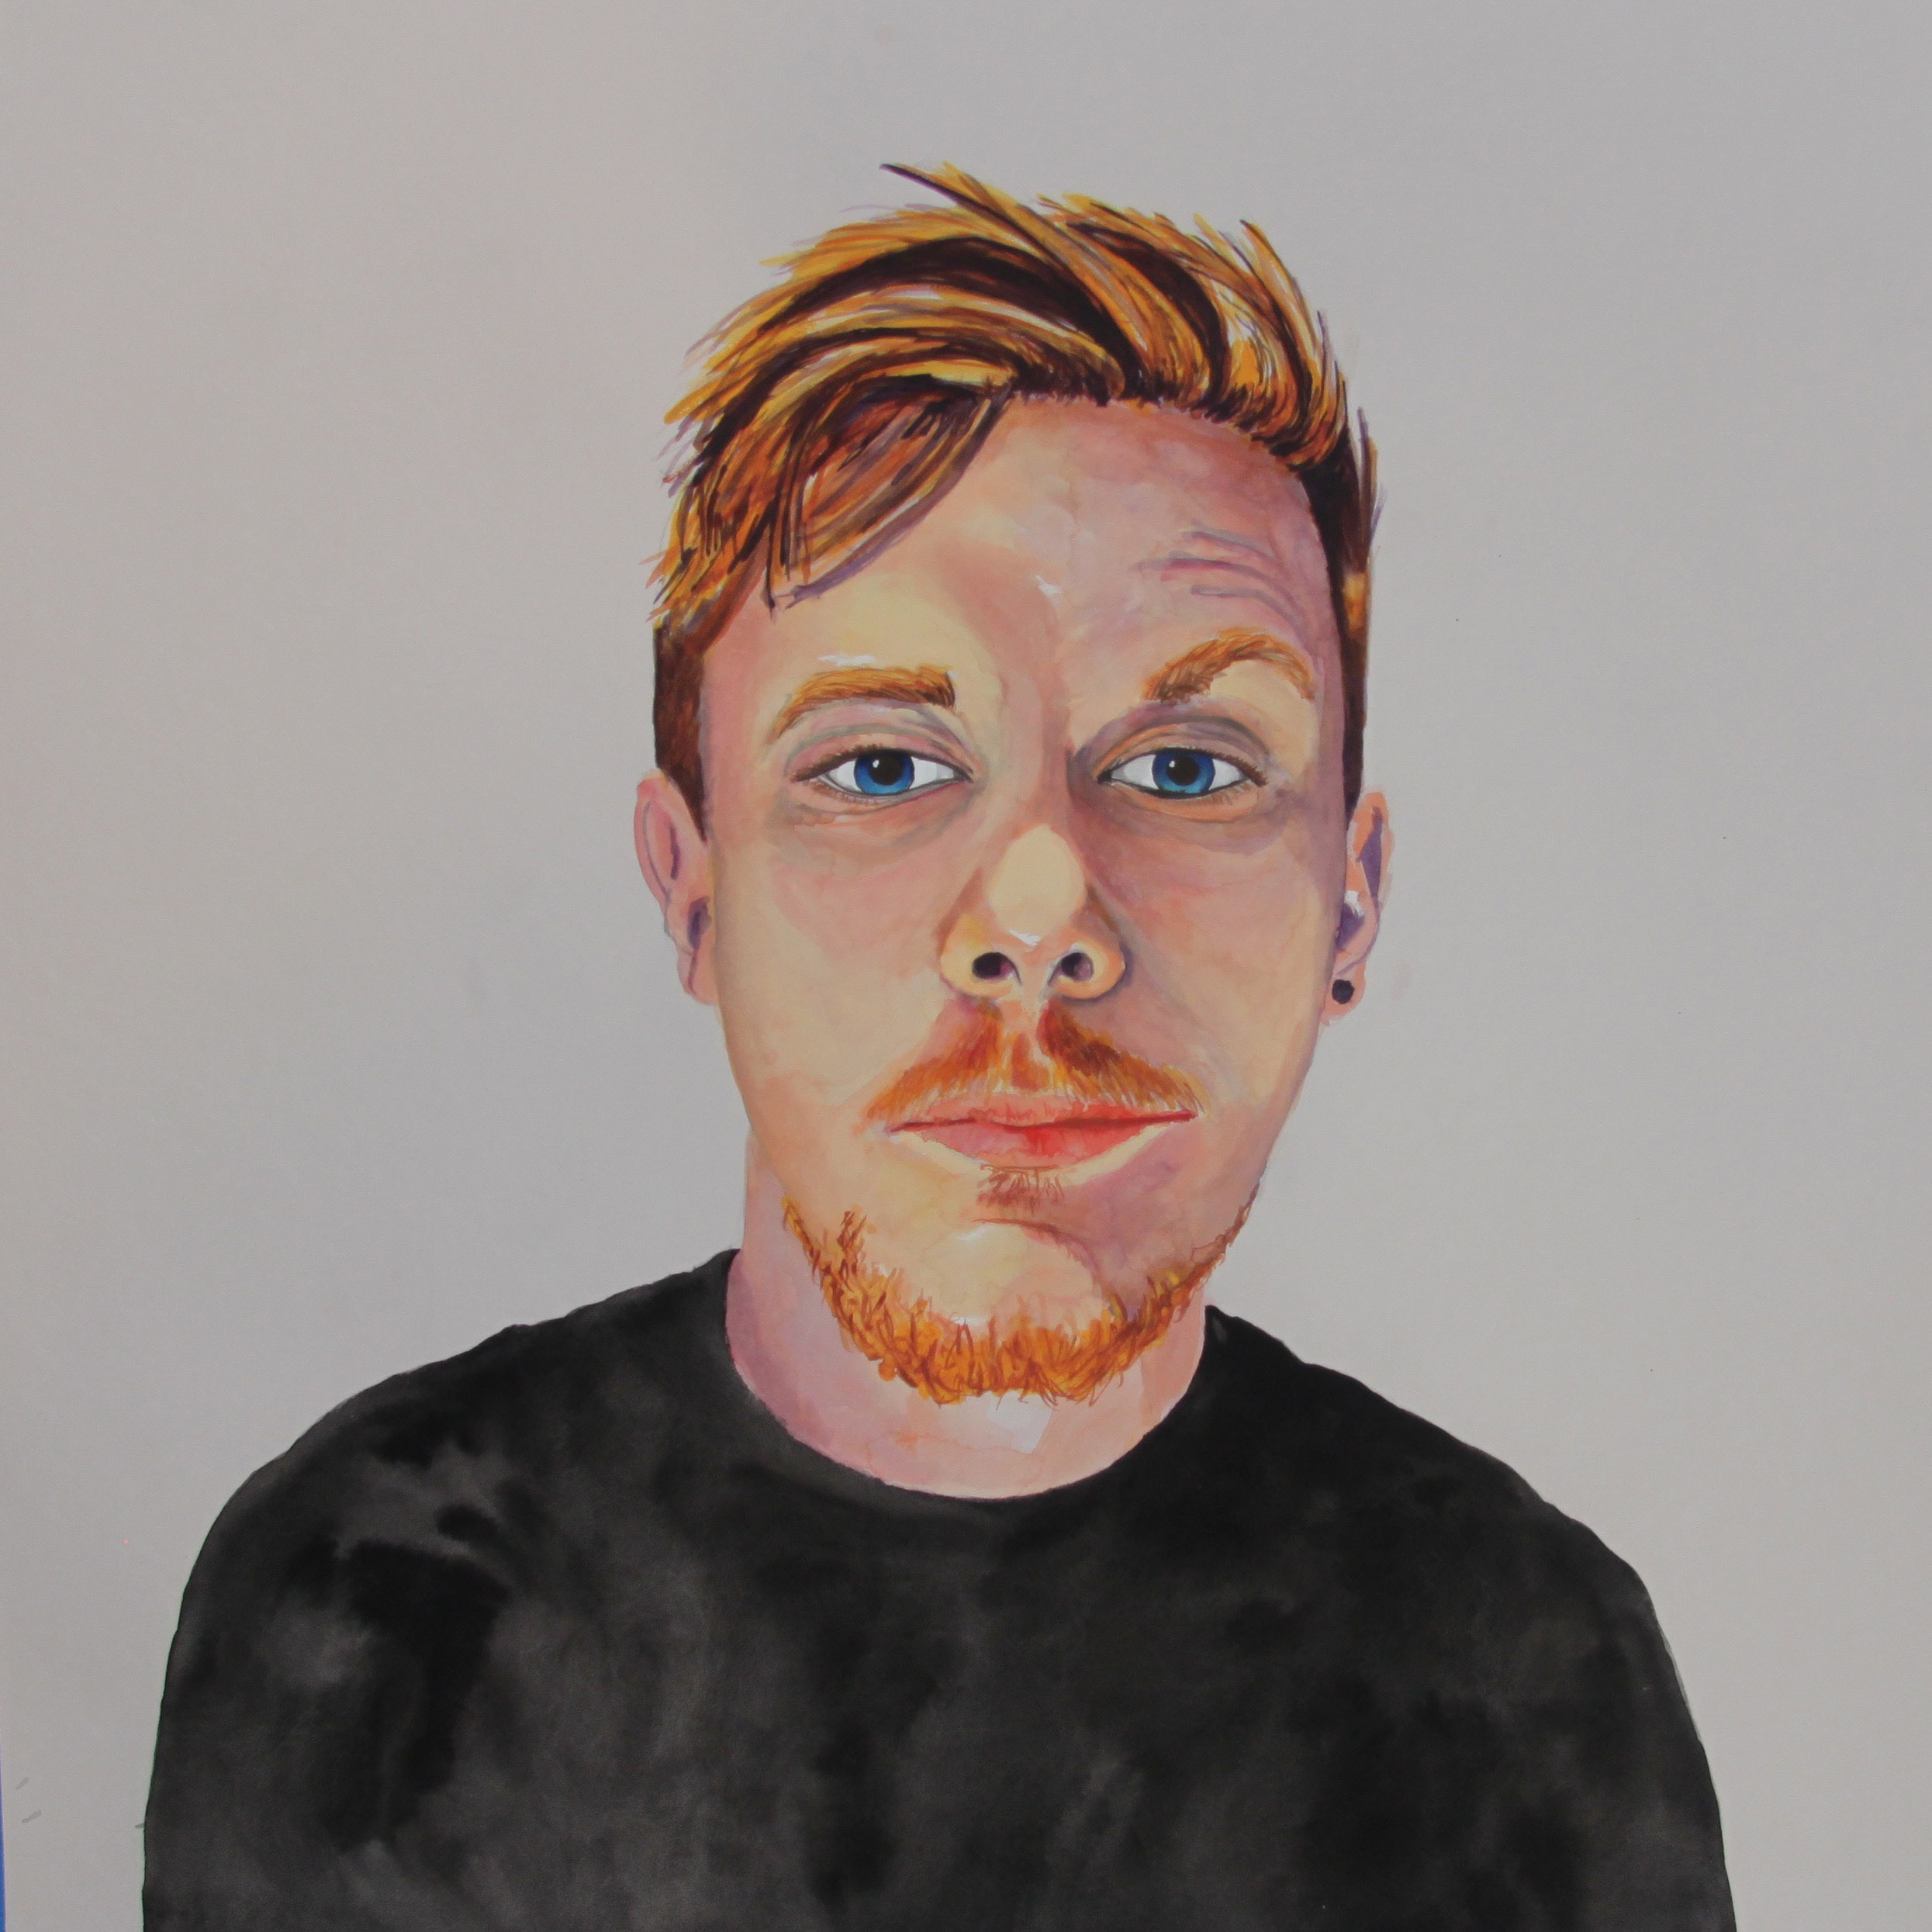 Dunn_LiamFleming_watercolor.jpg